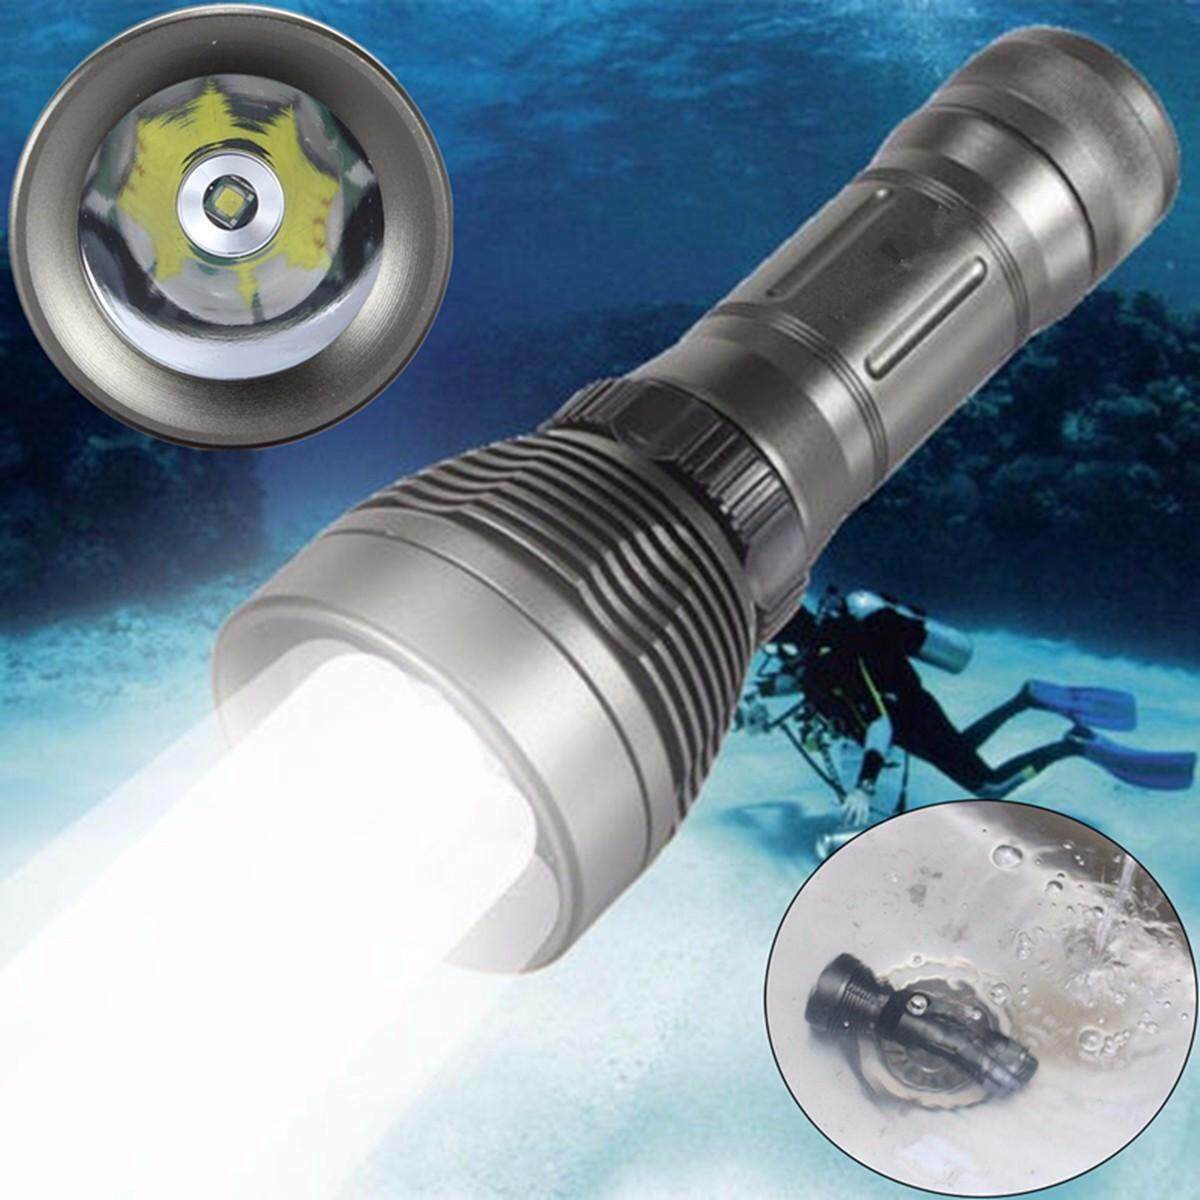 Elfeland Underwater Scuba 8000Lm T6 Led Diving Flashlight 26650 Lamp Light Intl Compare Prices